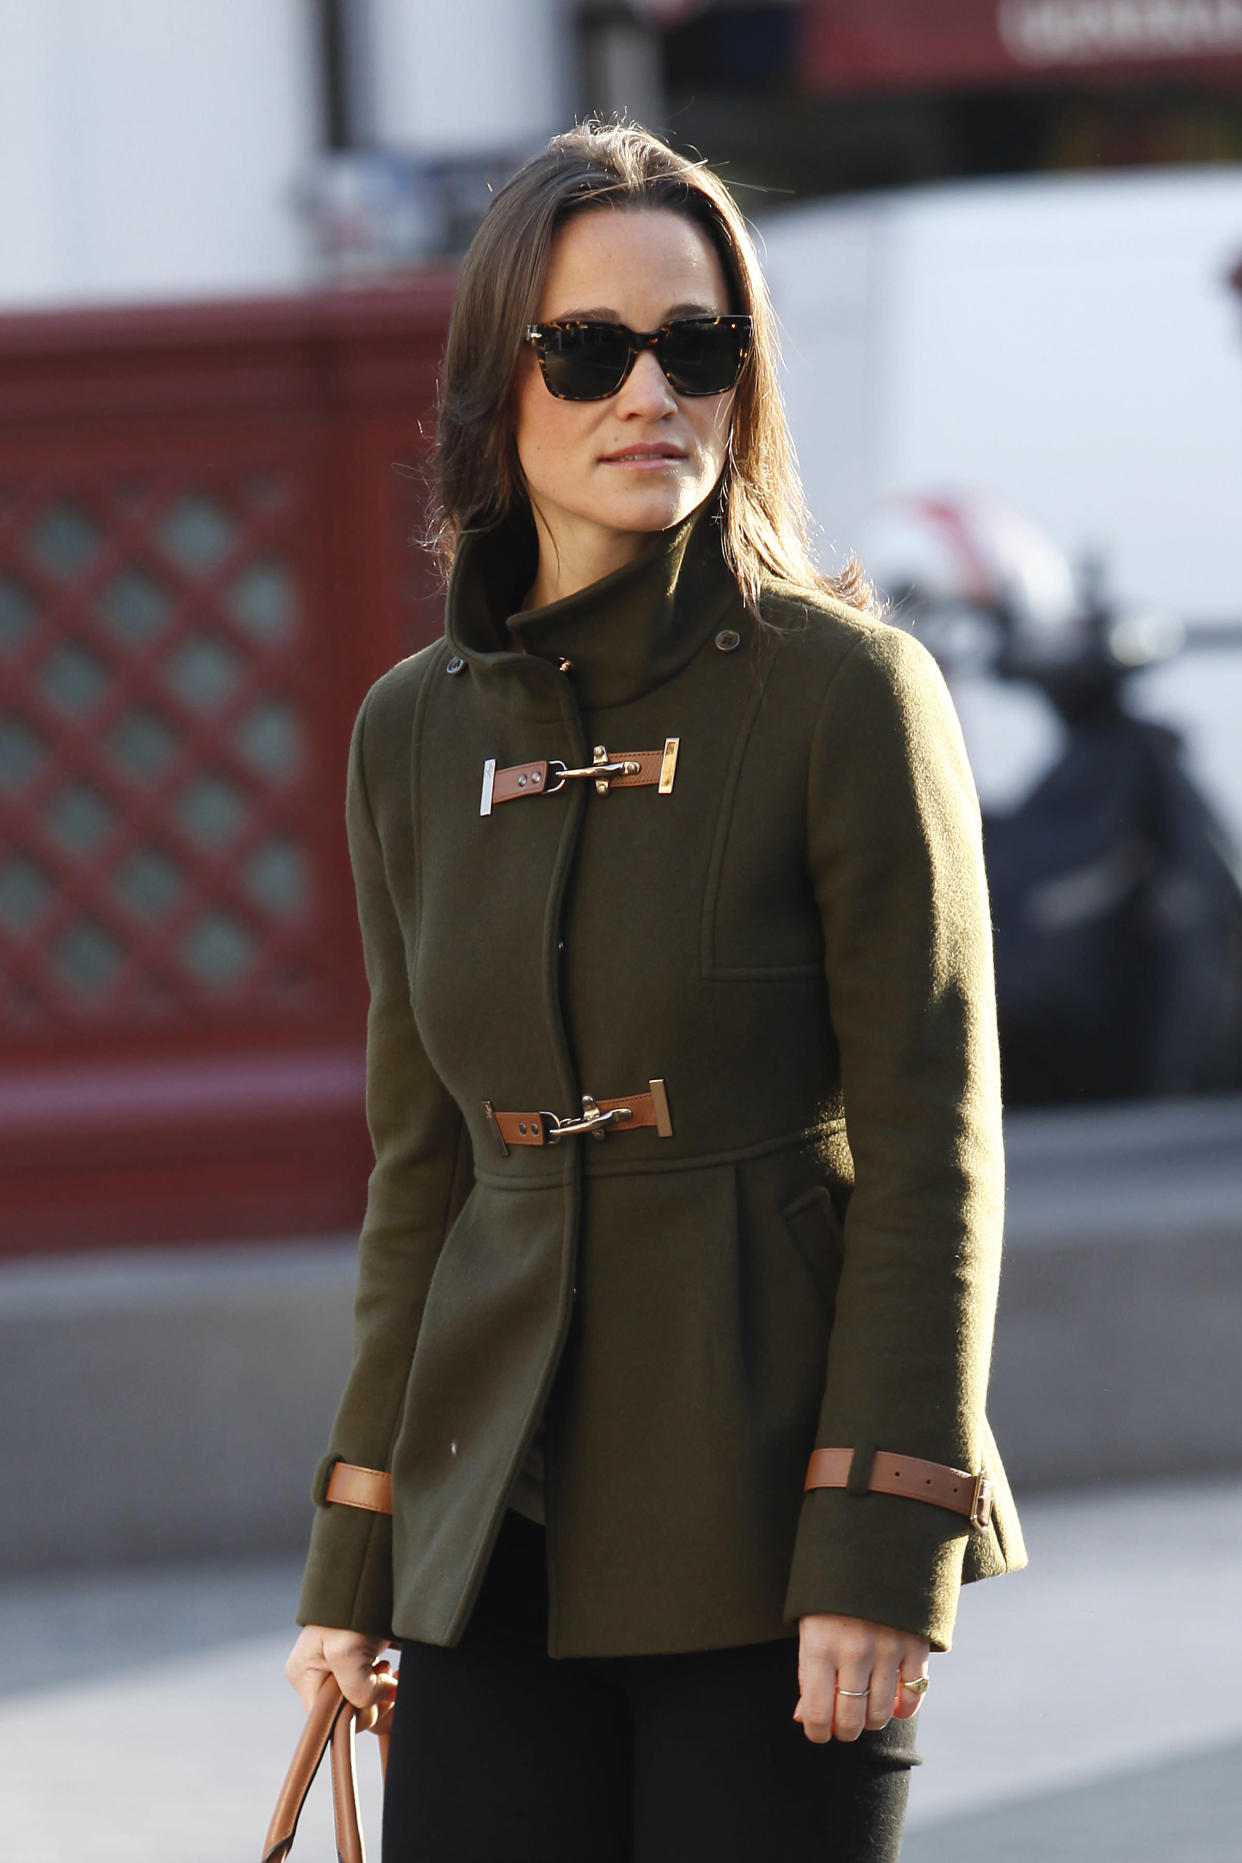 How to get the Military Inspired Look